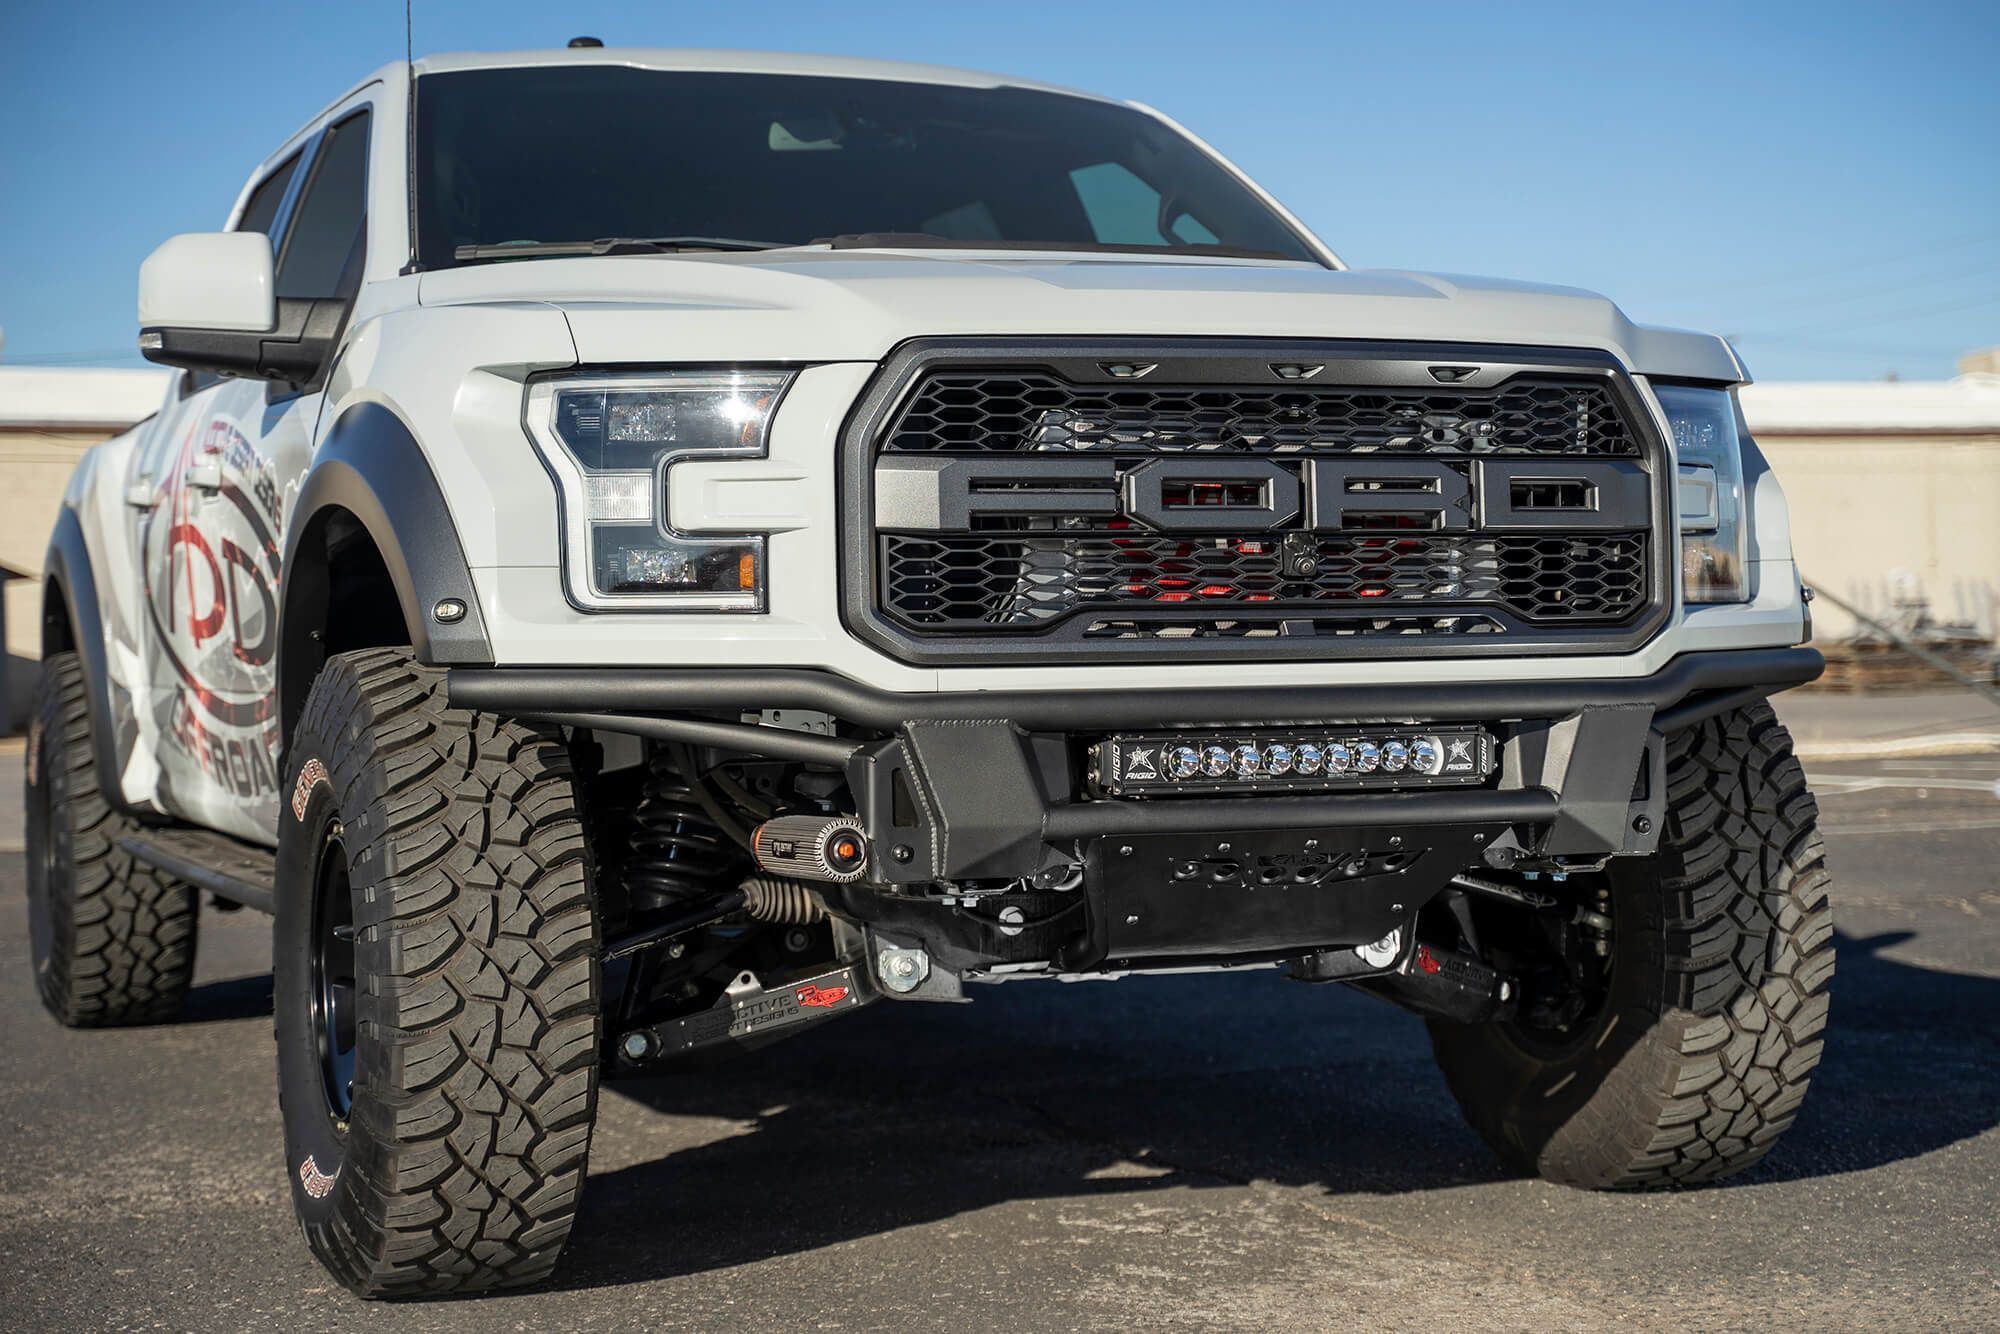 2017 2020 Ford Raptor Add Pro Bolt On Front Bumper Ford Raptor Ford Trucks F150 Built Ford Tough